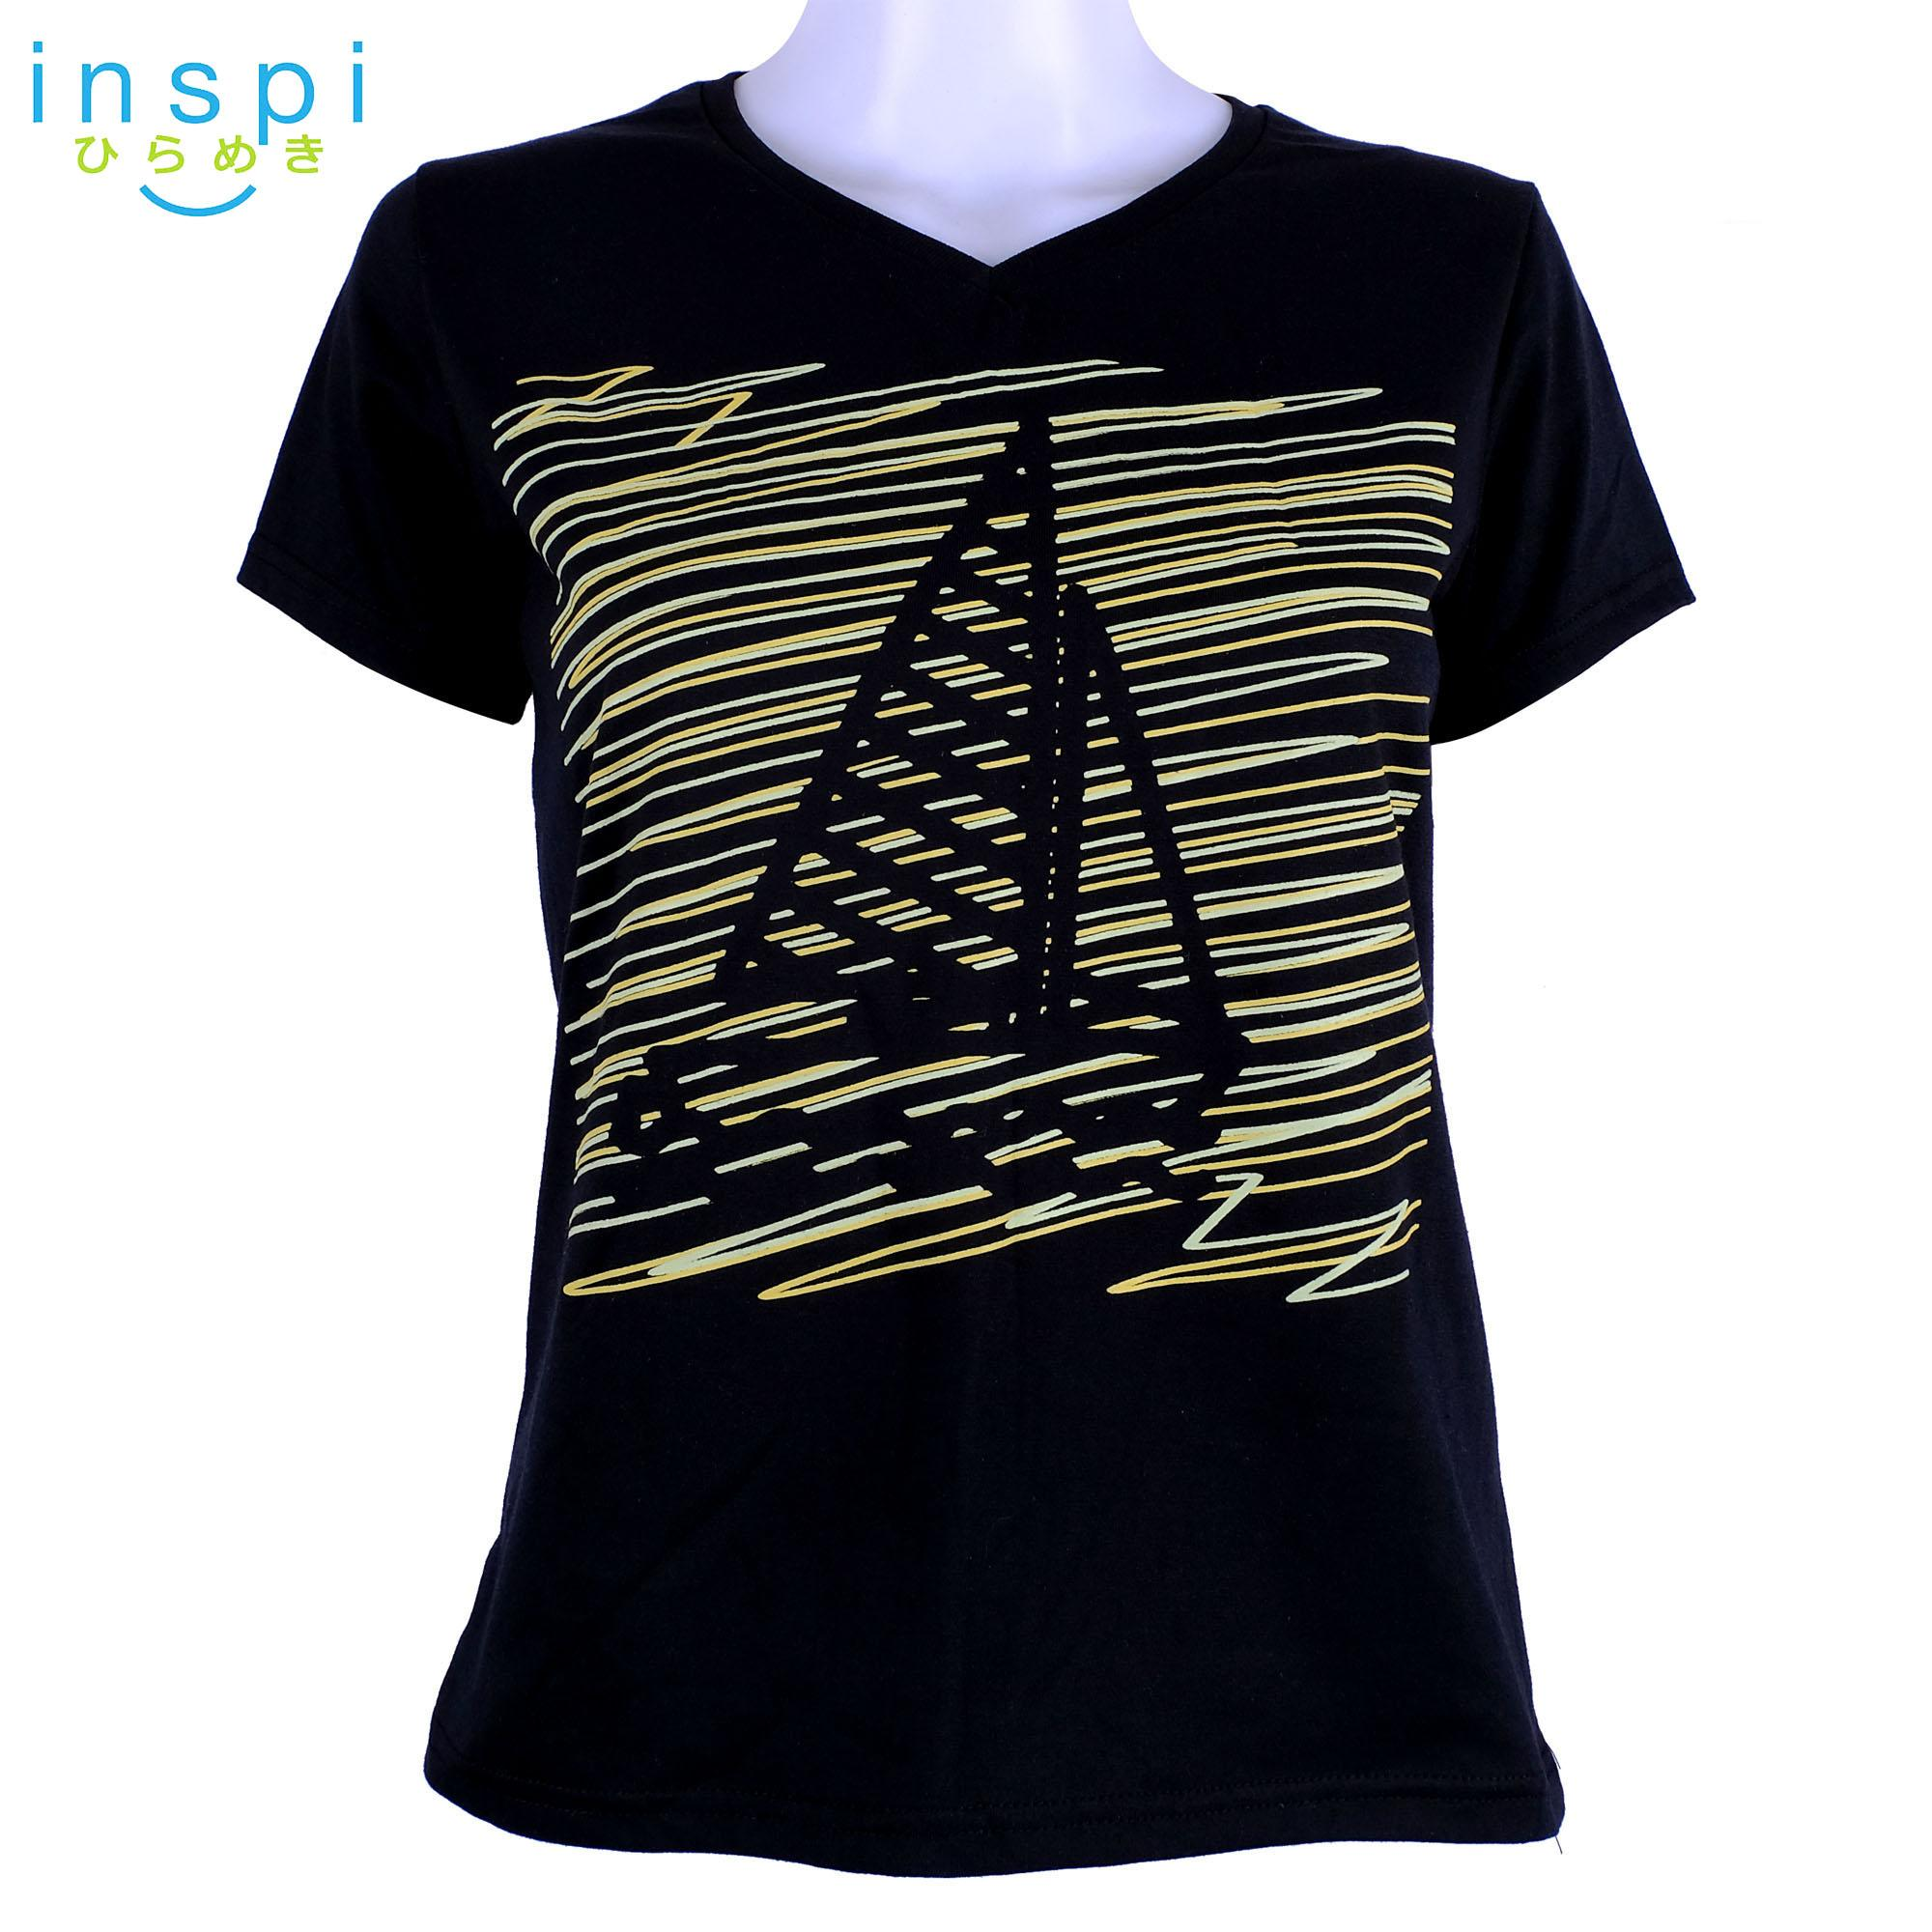 Shirts For Women For Sale Tops For Women Online Brands Prices